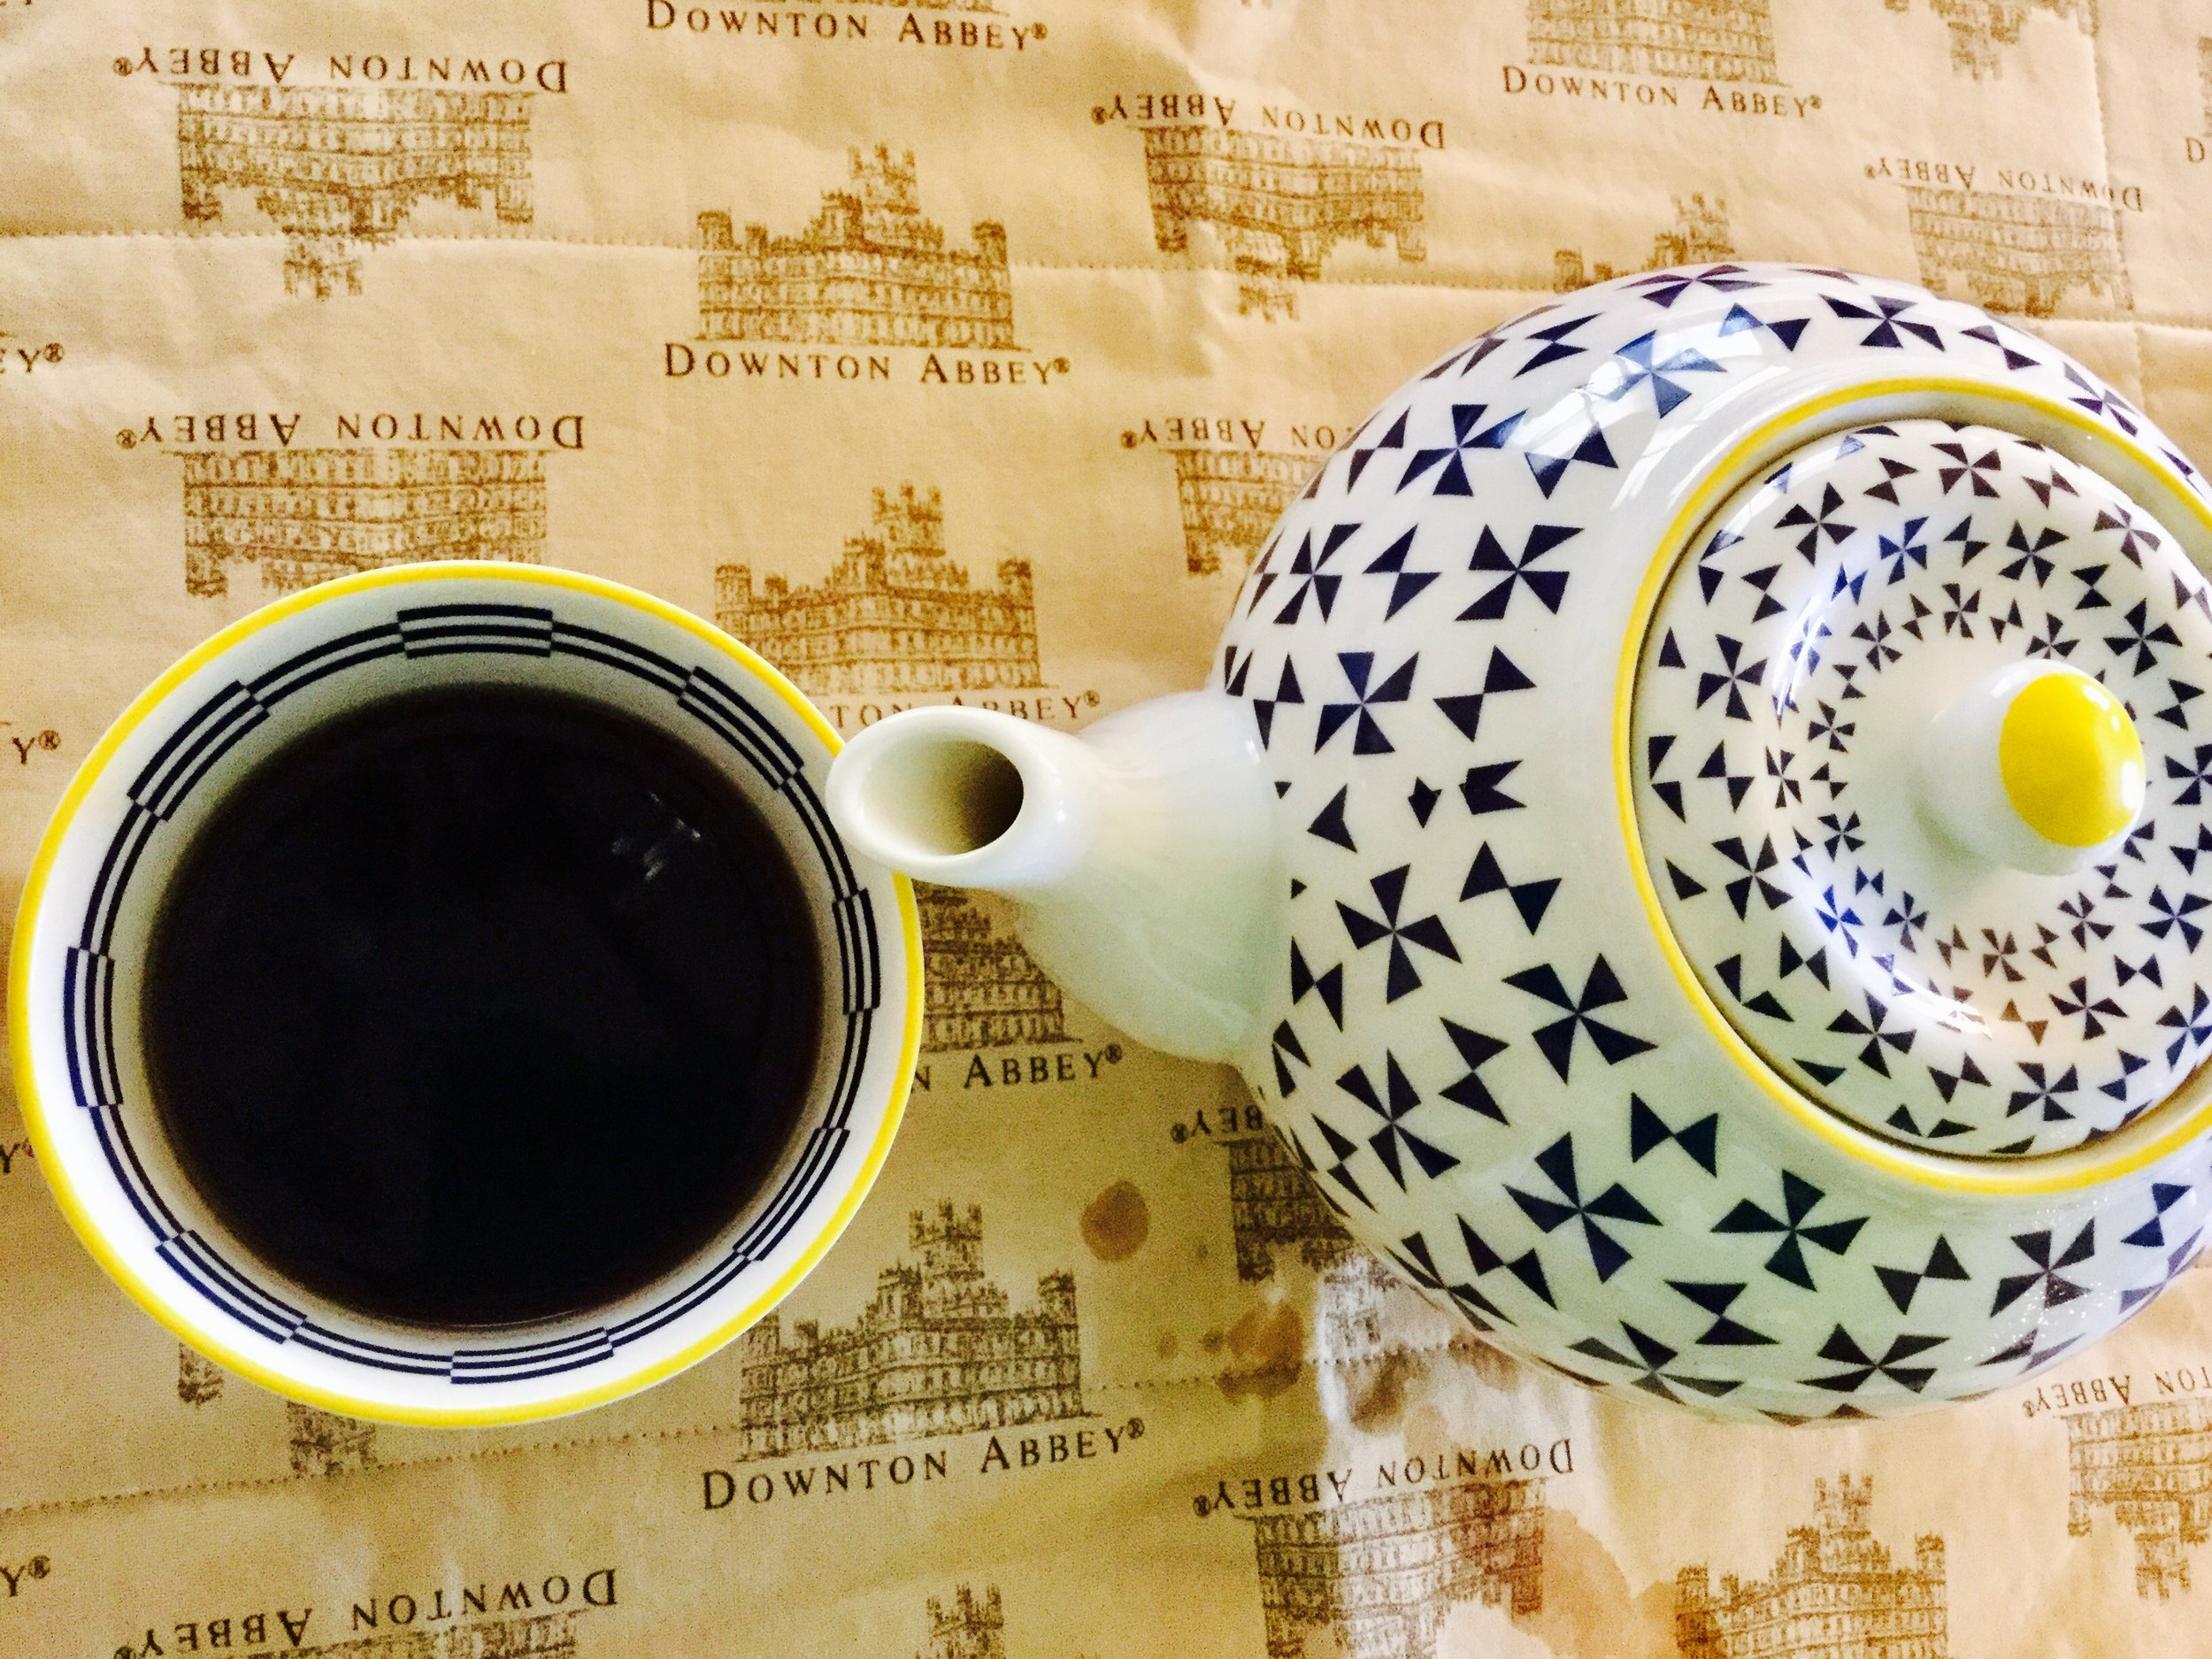 """Loose-leaf Pu'erh steeped to provide a bold, robust earthly flavor. . . With happy thoughts of """"Downton Abbey"""""""